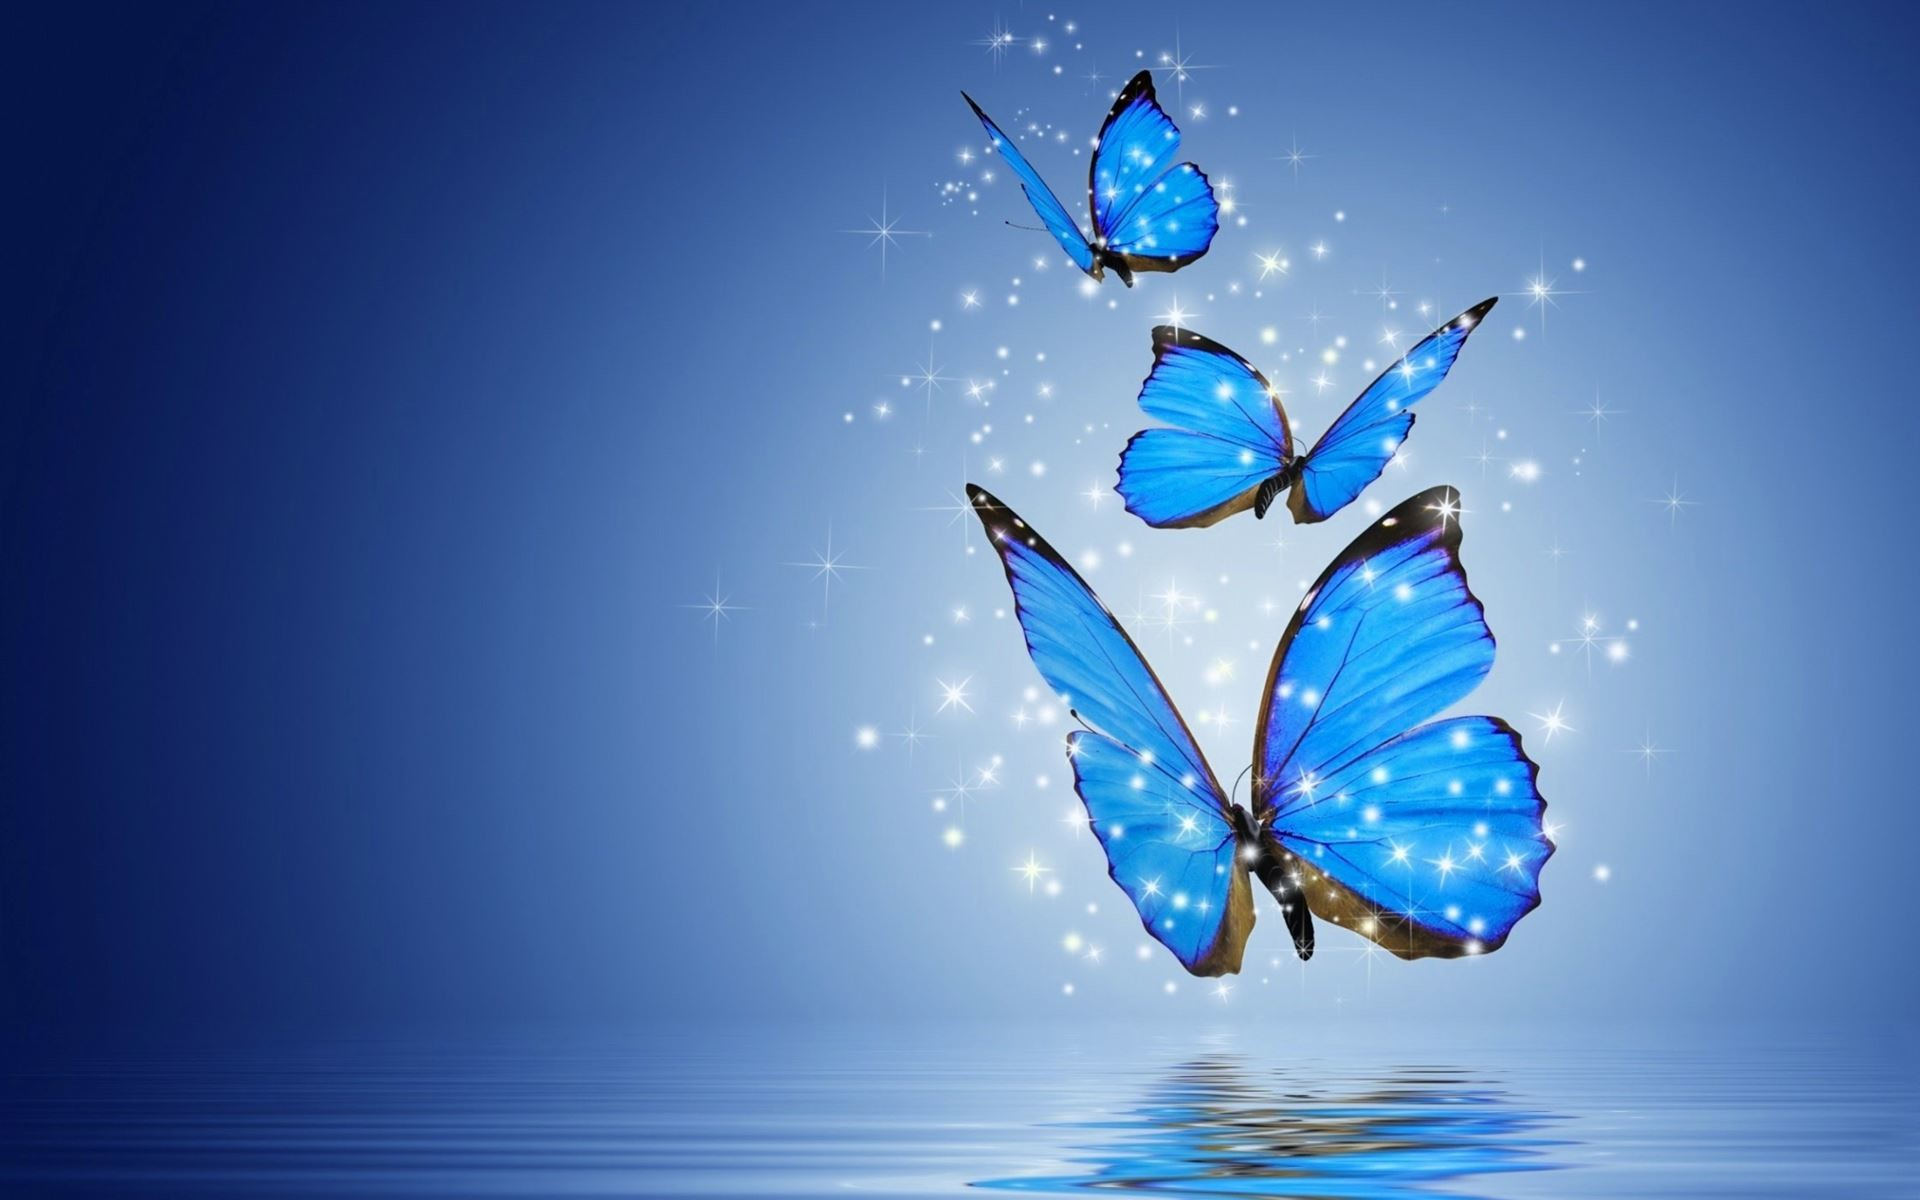 Butterfly Wallpaper for Computer  60  images  1920x1200 Animated butterfly wallpaper desktop   photo 23